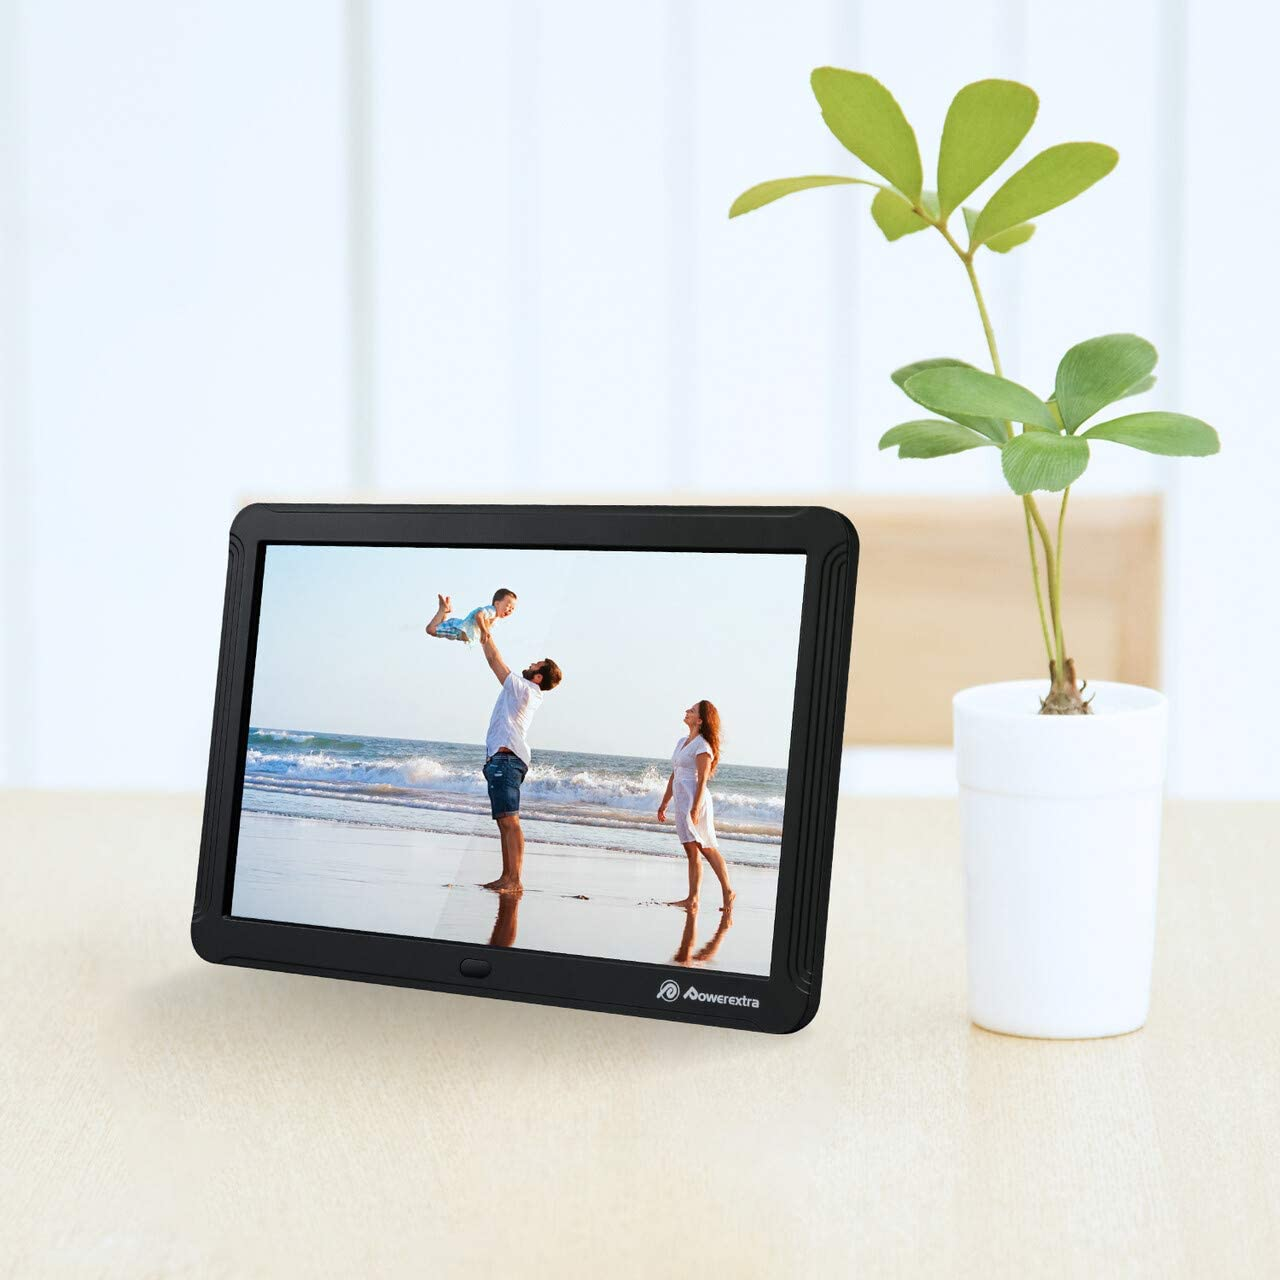 Powerextra 8 inch Digital Photo Frame HD Digital Picture Frame 1280 x 800 Support Thumb USB Drive SD//MMC//MS Card and Photos Auto Rotate